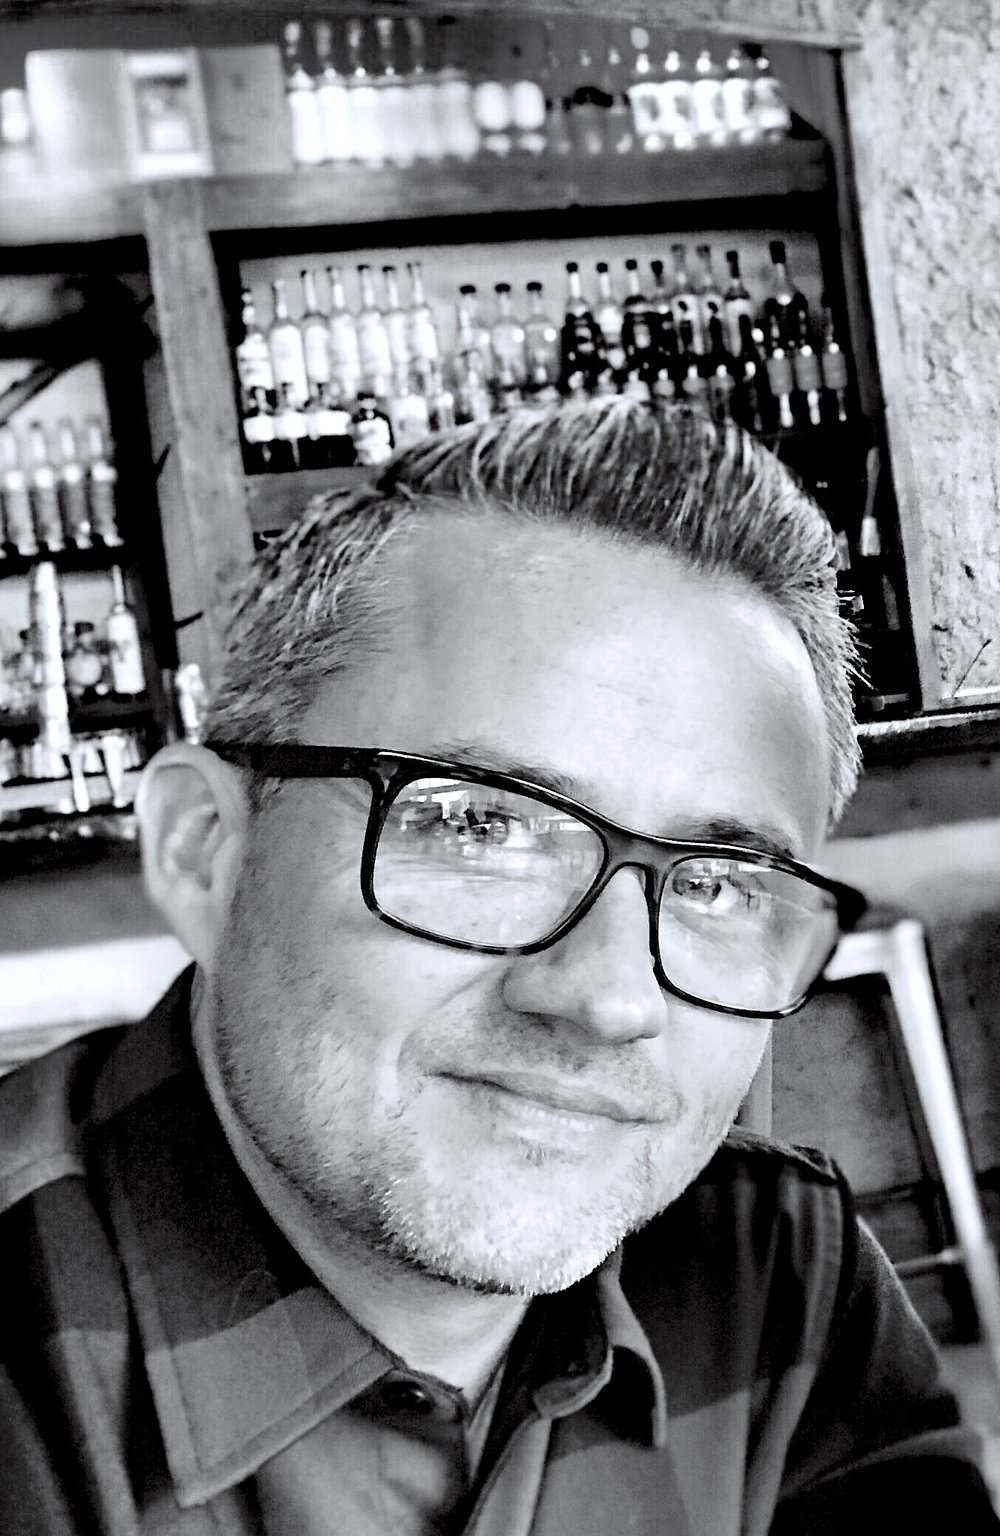 JUSTIN HICKOX - OWNER/STYLISTJustin grew up around the hair industry. With parents who owned one of the top salons in the world, he was a constant figure in the salon after school. He worked every aspect of the salon from sweeping the floor, to working at the front desk and balancing the books. At 18 he left Portland for Dallas TX to attend Toni and Guy Hairdressing Academy due to its reputation as one of the best hair schools in the nation. From there he returned to Portland and went through an 18 month apprenticeship program to fine tune the craft. He's been a stylist for over 20 years and a salon owner for over 15. He's known for his approach to the consultation process and believes the key to a happy client is asking enough of the right questions to learn about THEM and what THEY want. From that point it's about taking the time to educate and empower the client to work together with him to create the perfect solution for their hair.